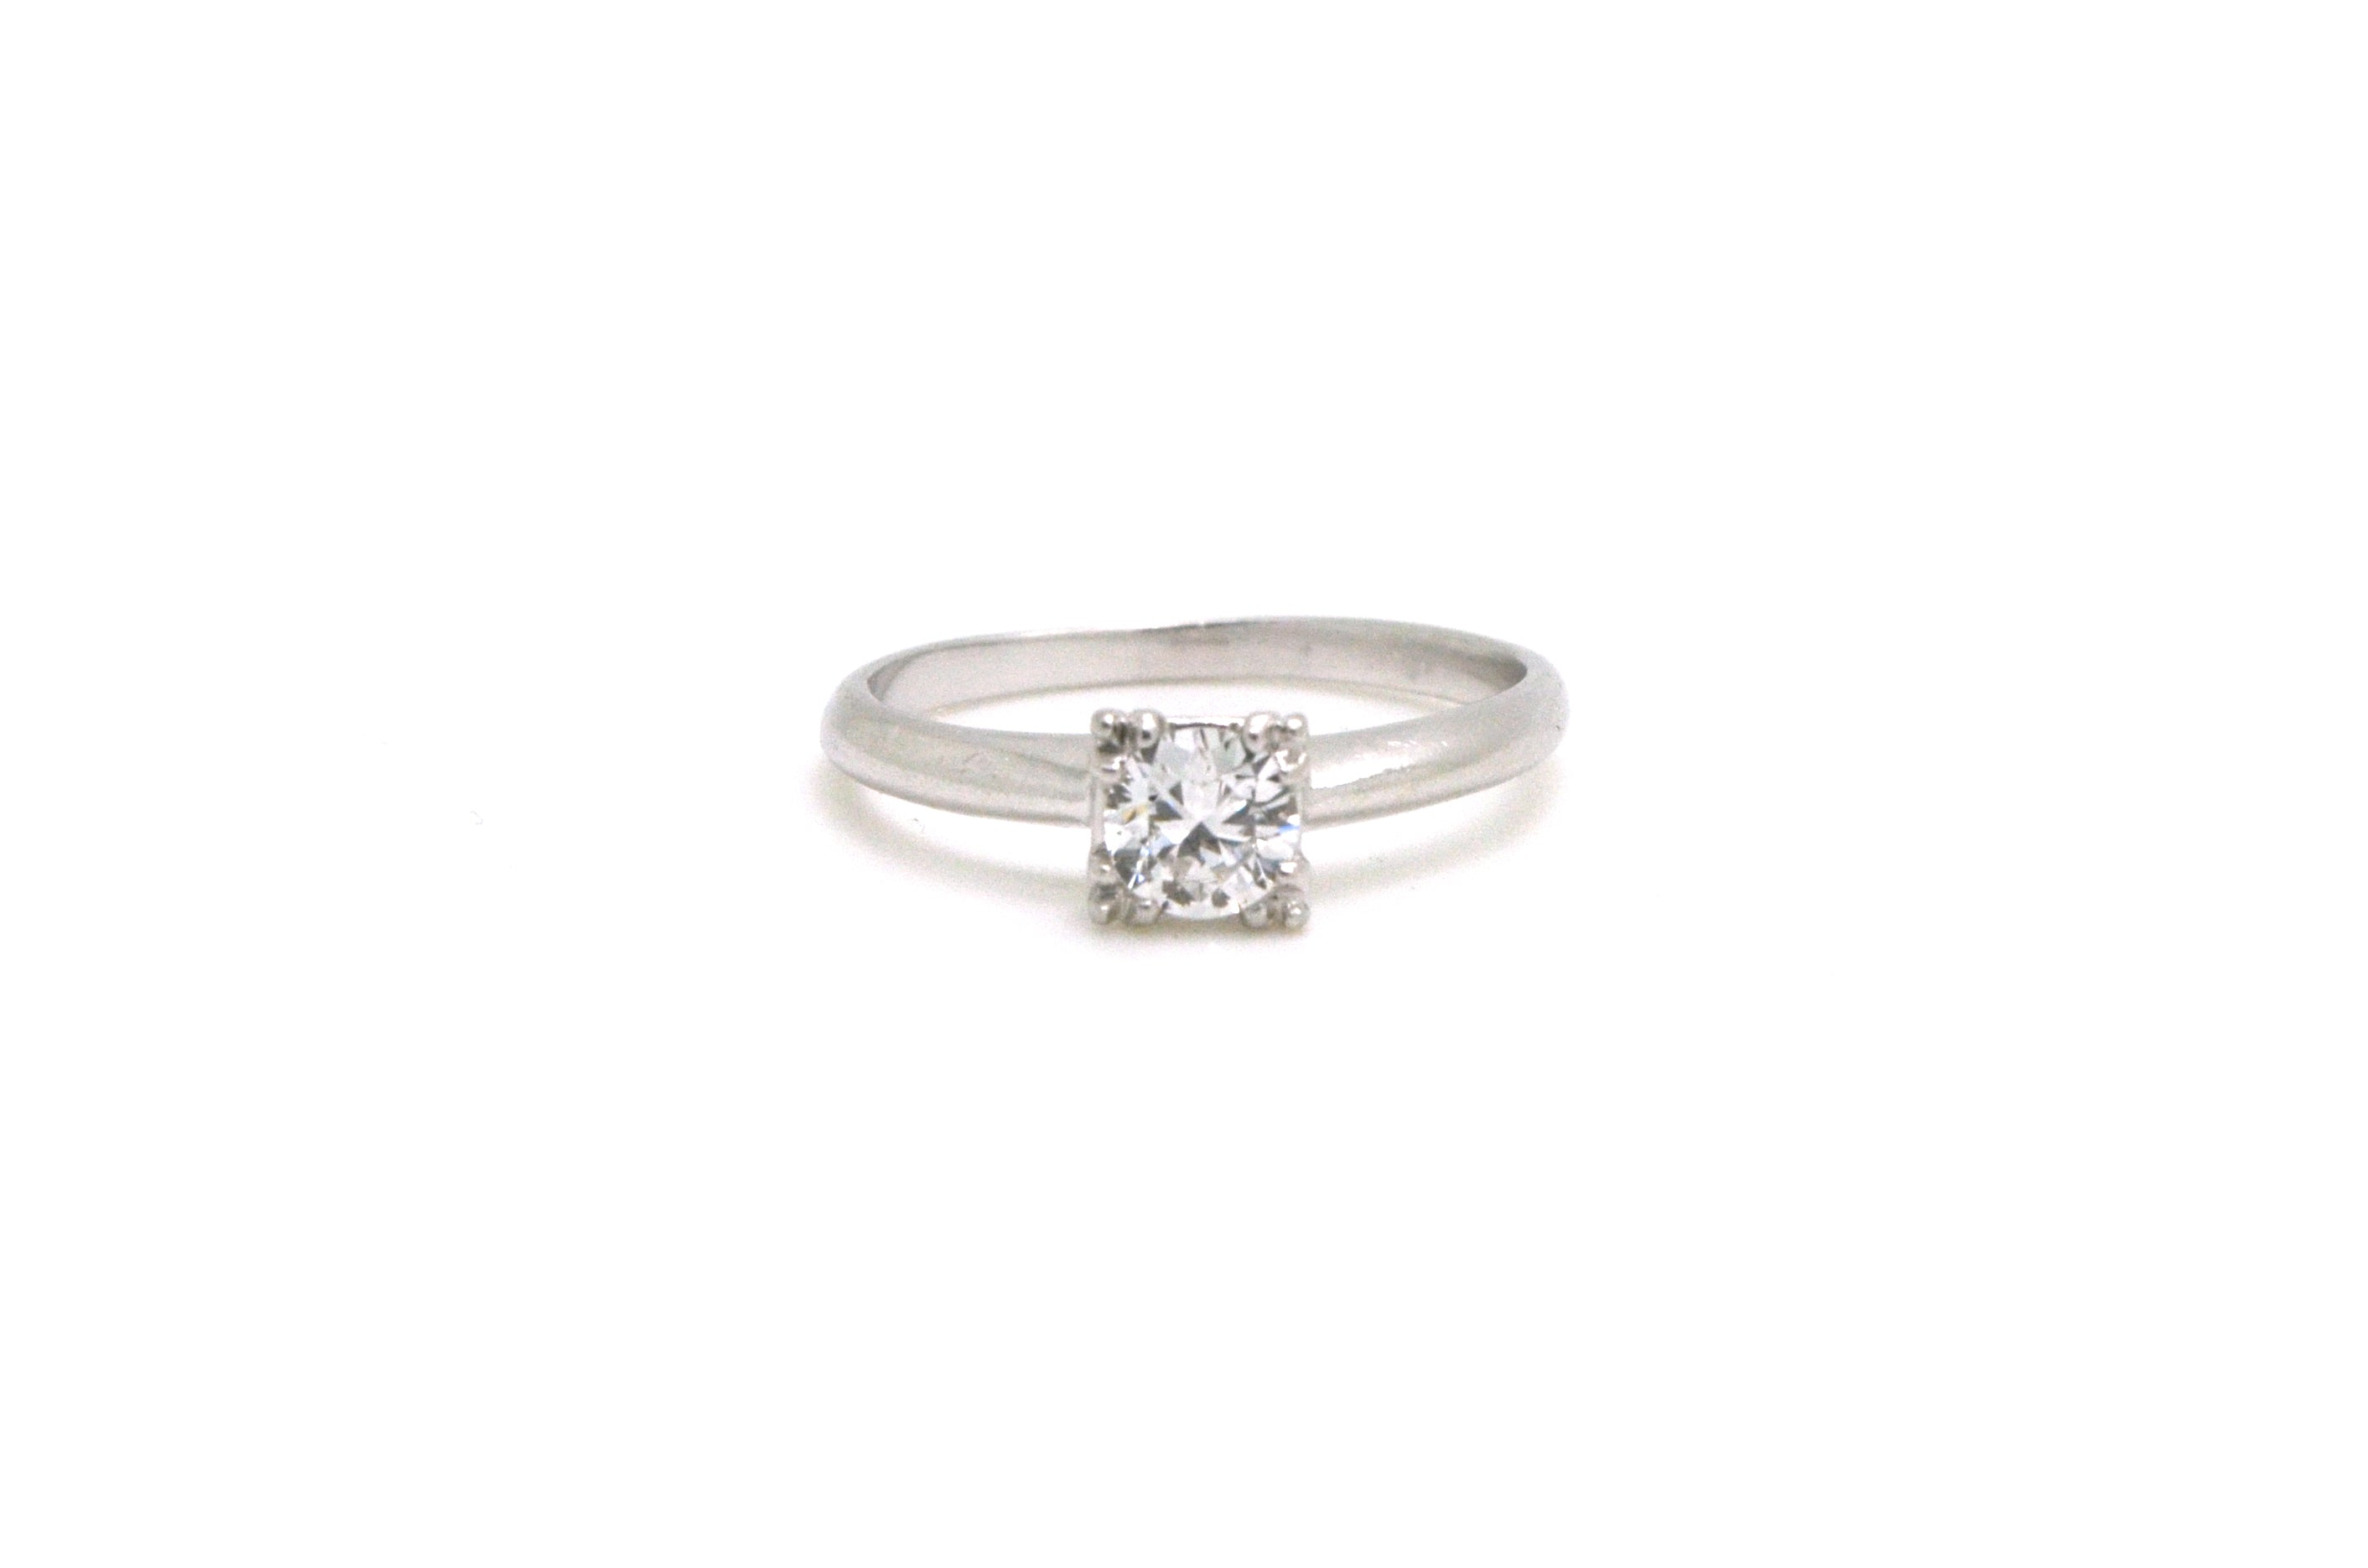 paris b pave solitaire ring platinum engagement michael diamond